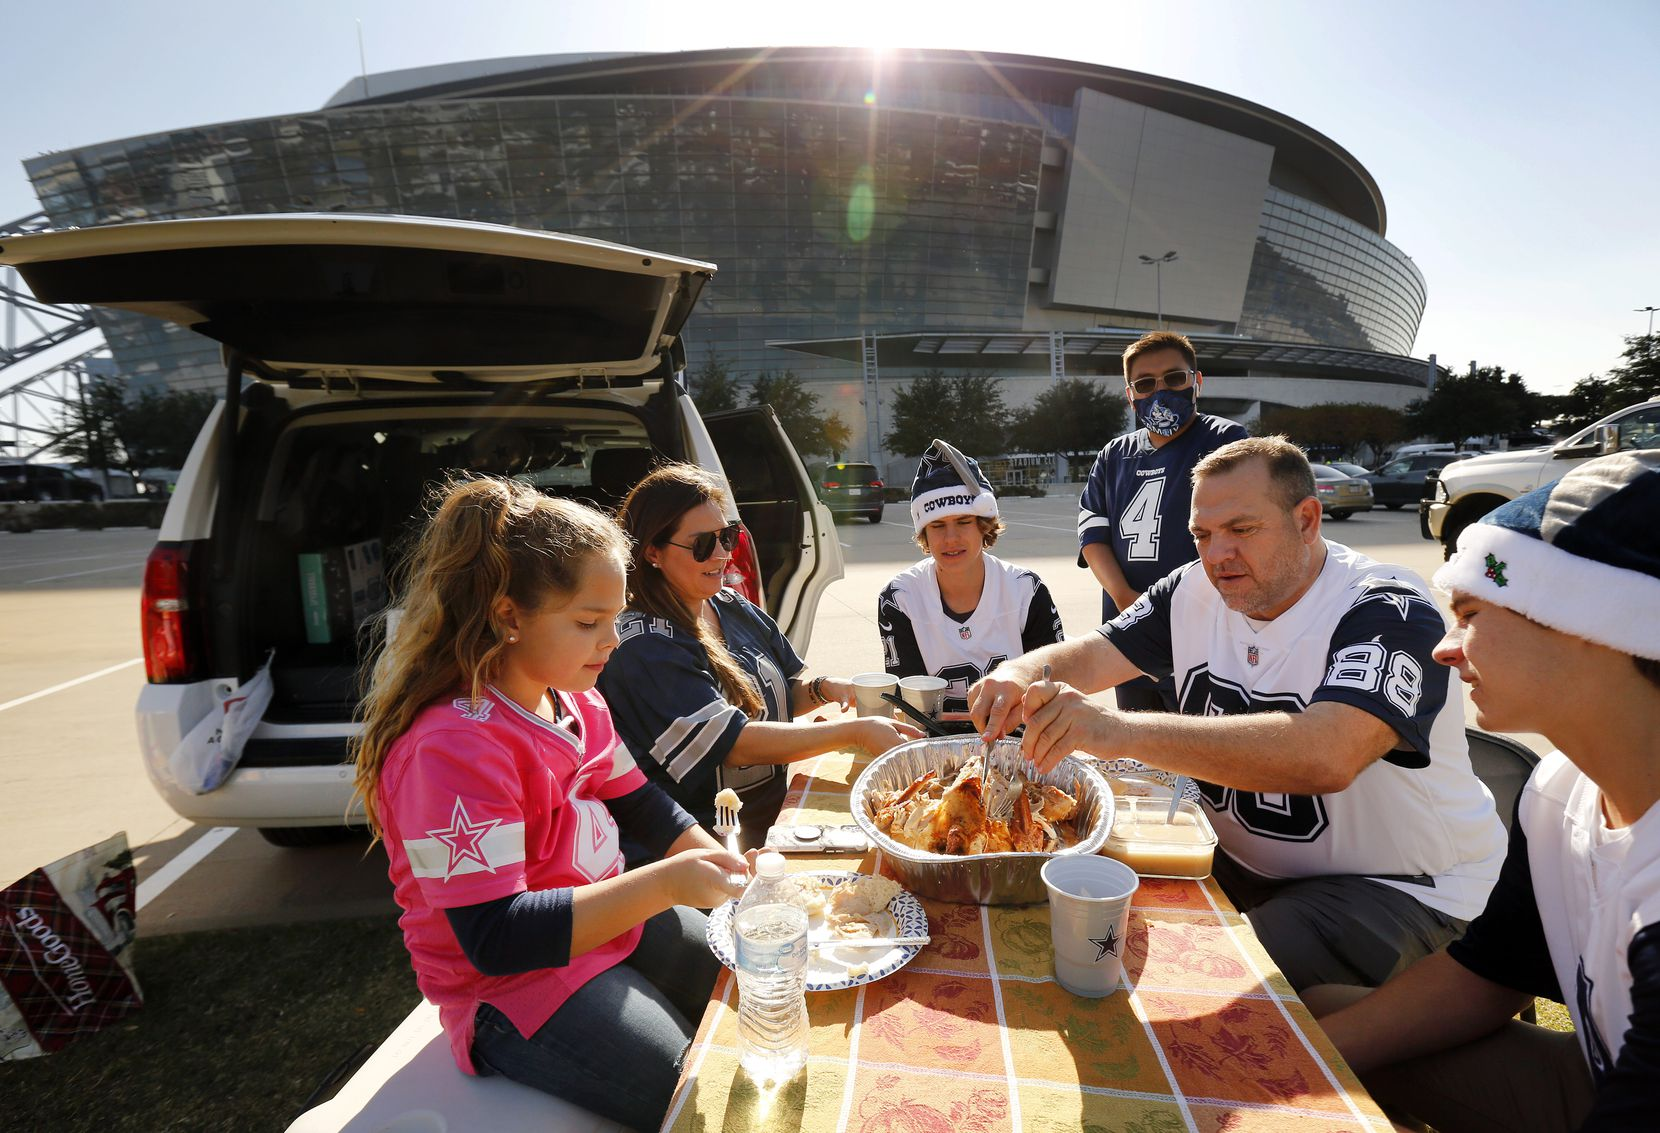 Dallas Cowboys fans from Newport Beach, California dine on a Cajun Thanksgiving Day turkey as they tailgate outside AT&T Stadium in Arlington, Thursday, November 26, 2020. The Carson family from left, Grace, mom Christa, Cade, cousin William Hagermann, dad Todd and Cole drove to see their team play the Washington Football Team. (Tom Fox/The Dallas Morning News)